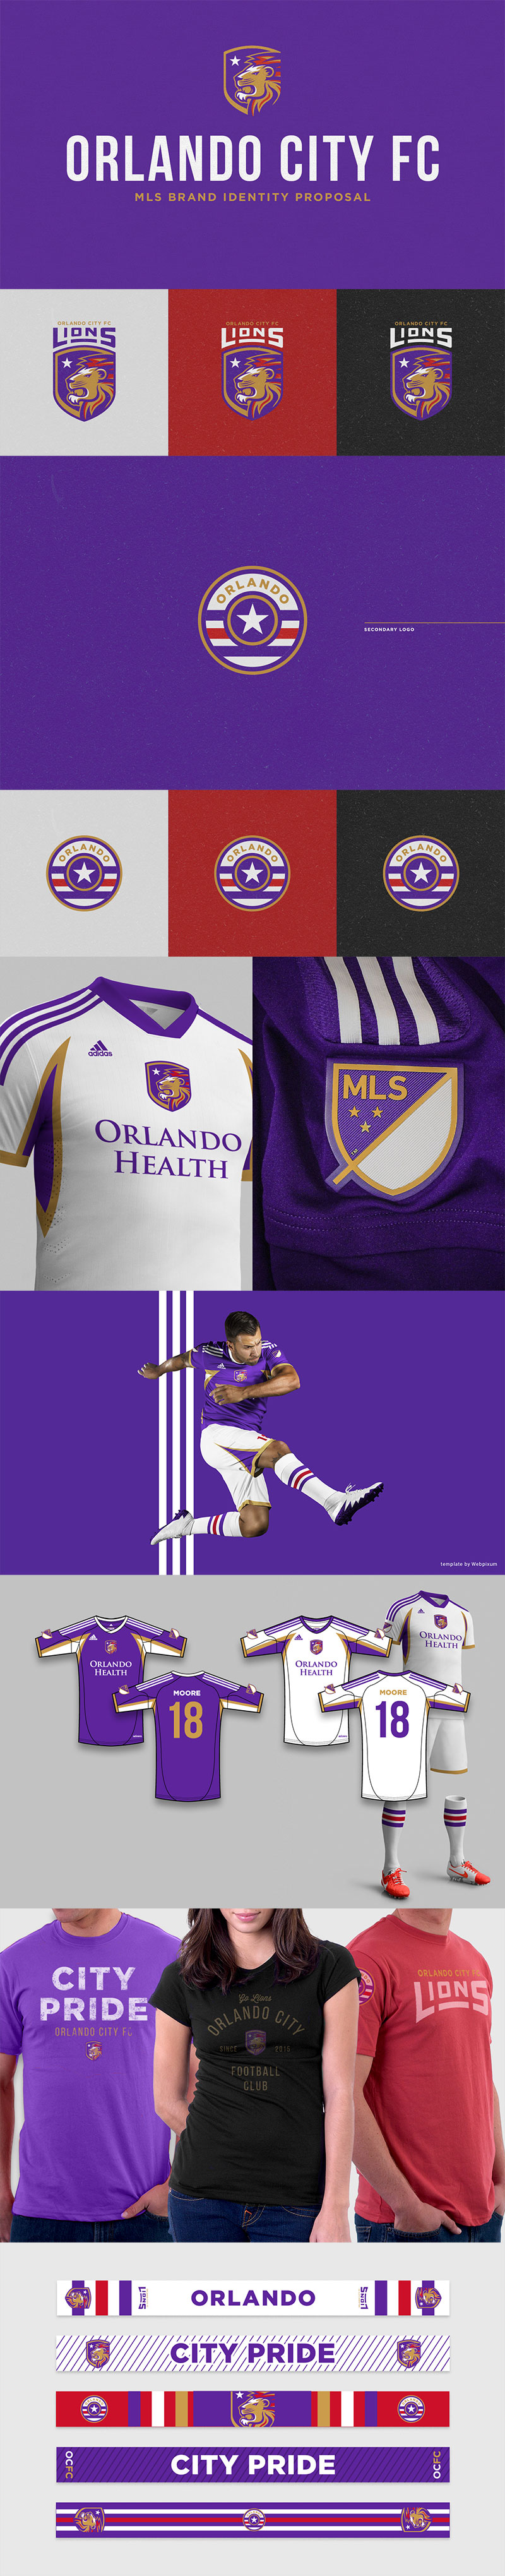 Orlando City Football Club - Identity Proposal by Brandon Moore